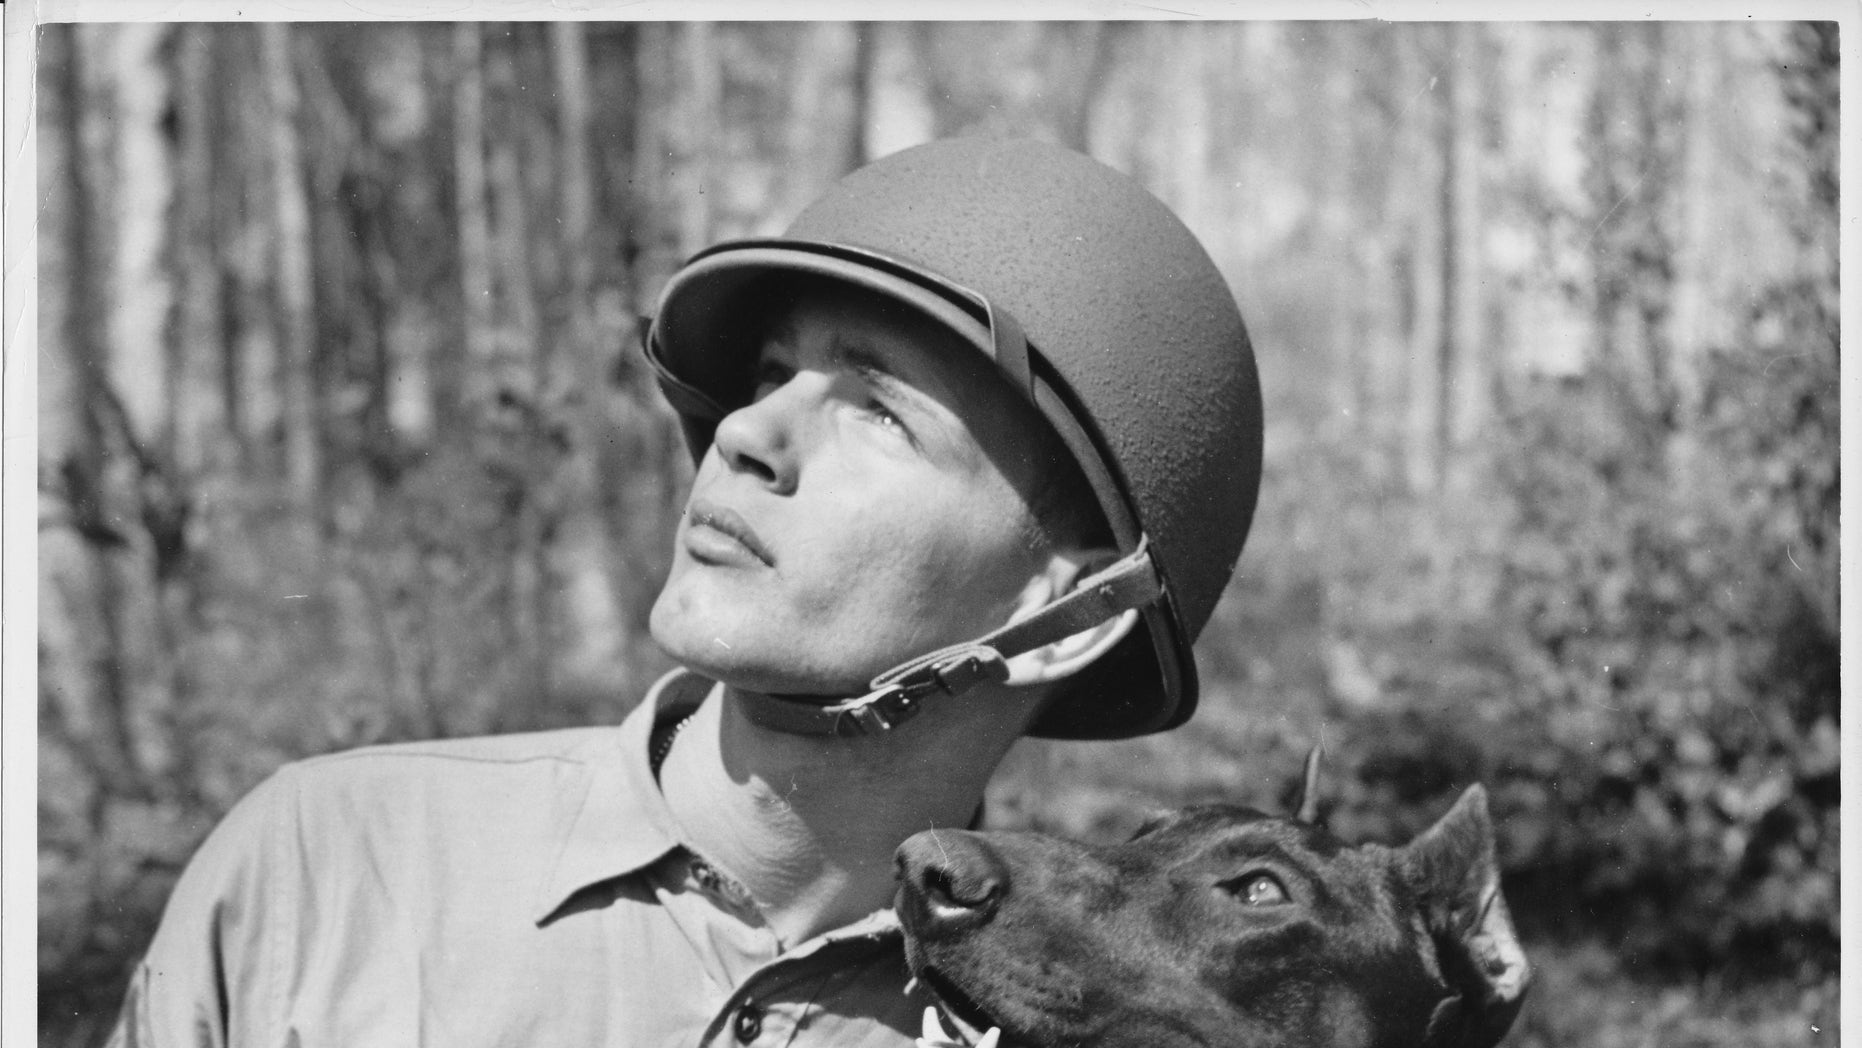 """Pfc. Homer J. Finley, Jr. USMC, is shown with his canine leatherneck buddy, 'Jan' spotting a make-believe sniper in a tree during the day's rugged training period. Pvt. 'Jan', a Doberman Pinscher, was enlisted by his owner for the duration."""